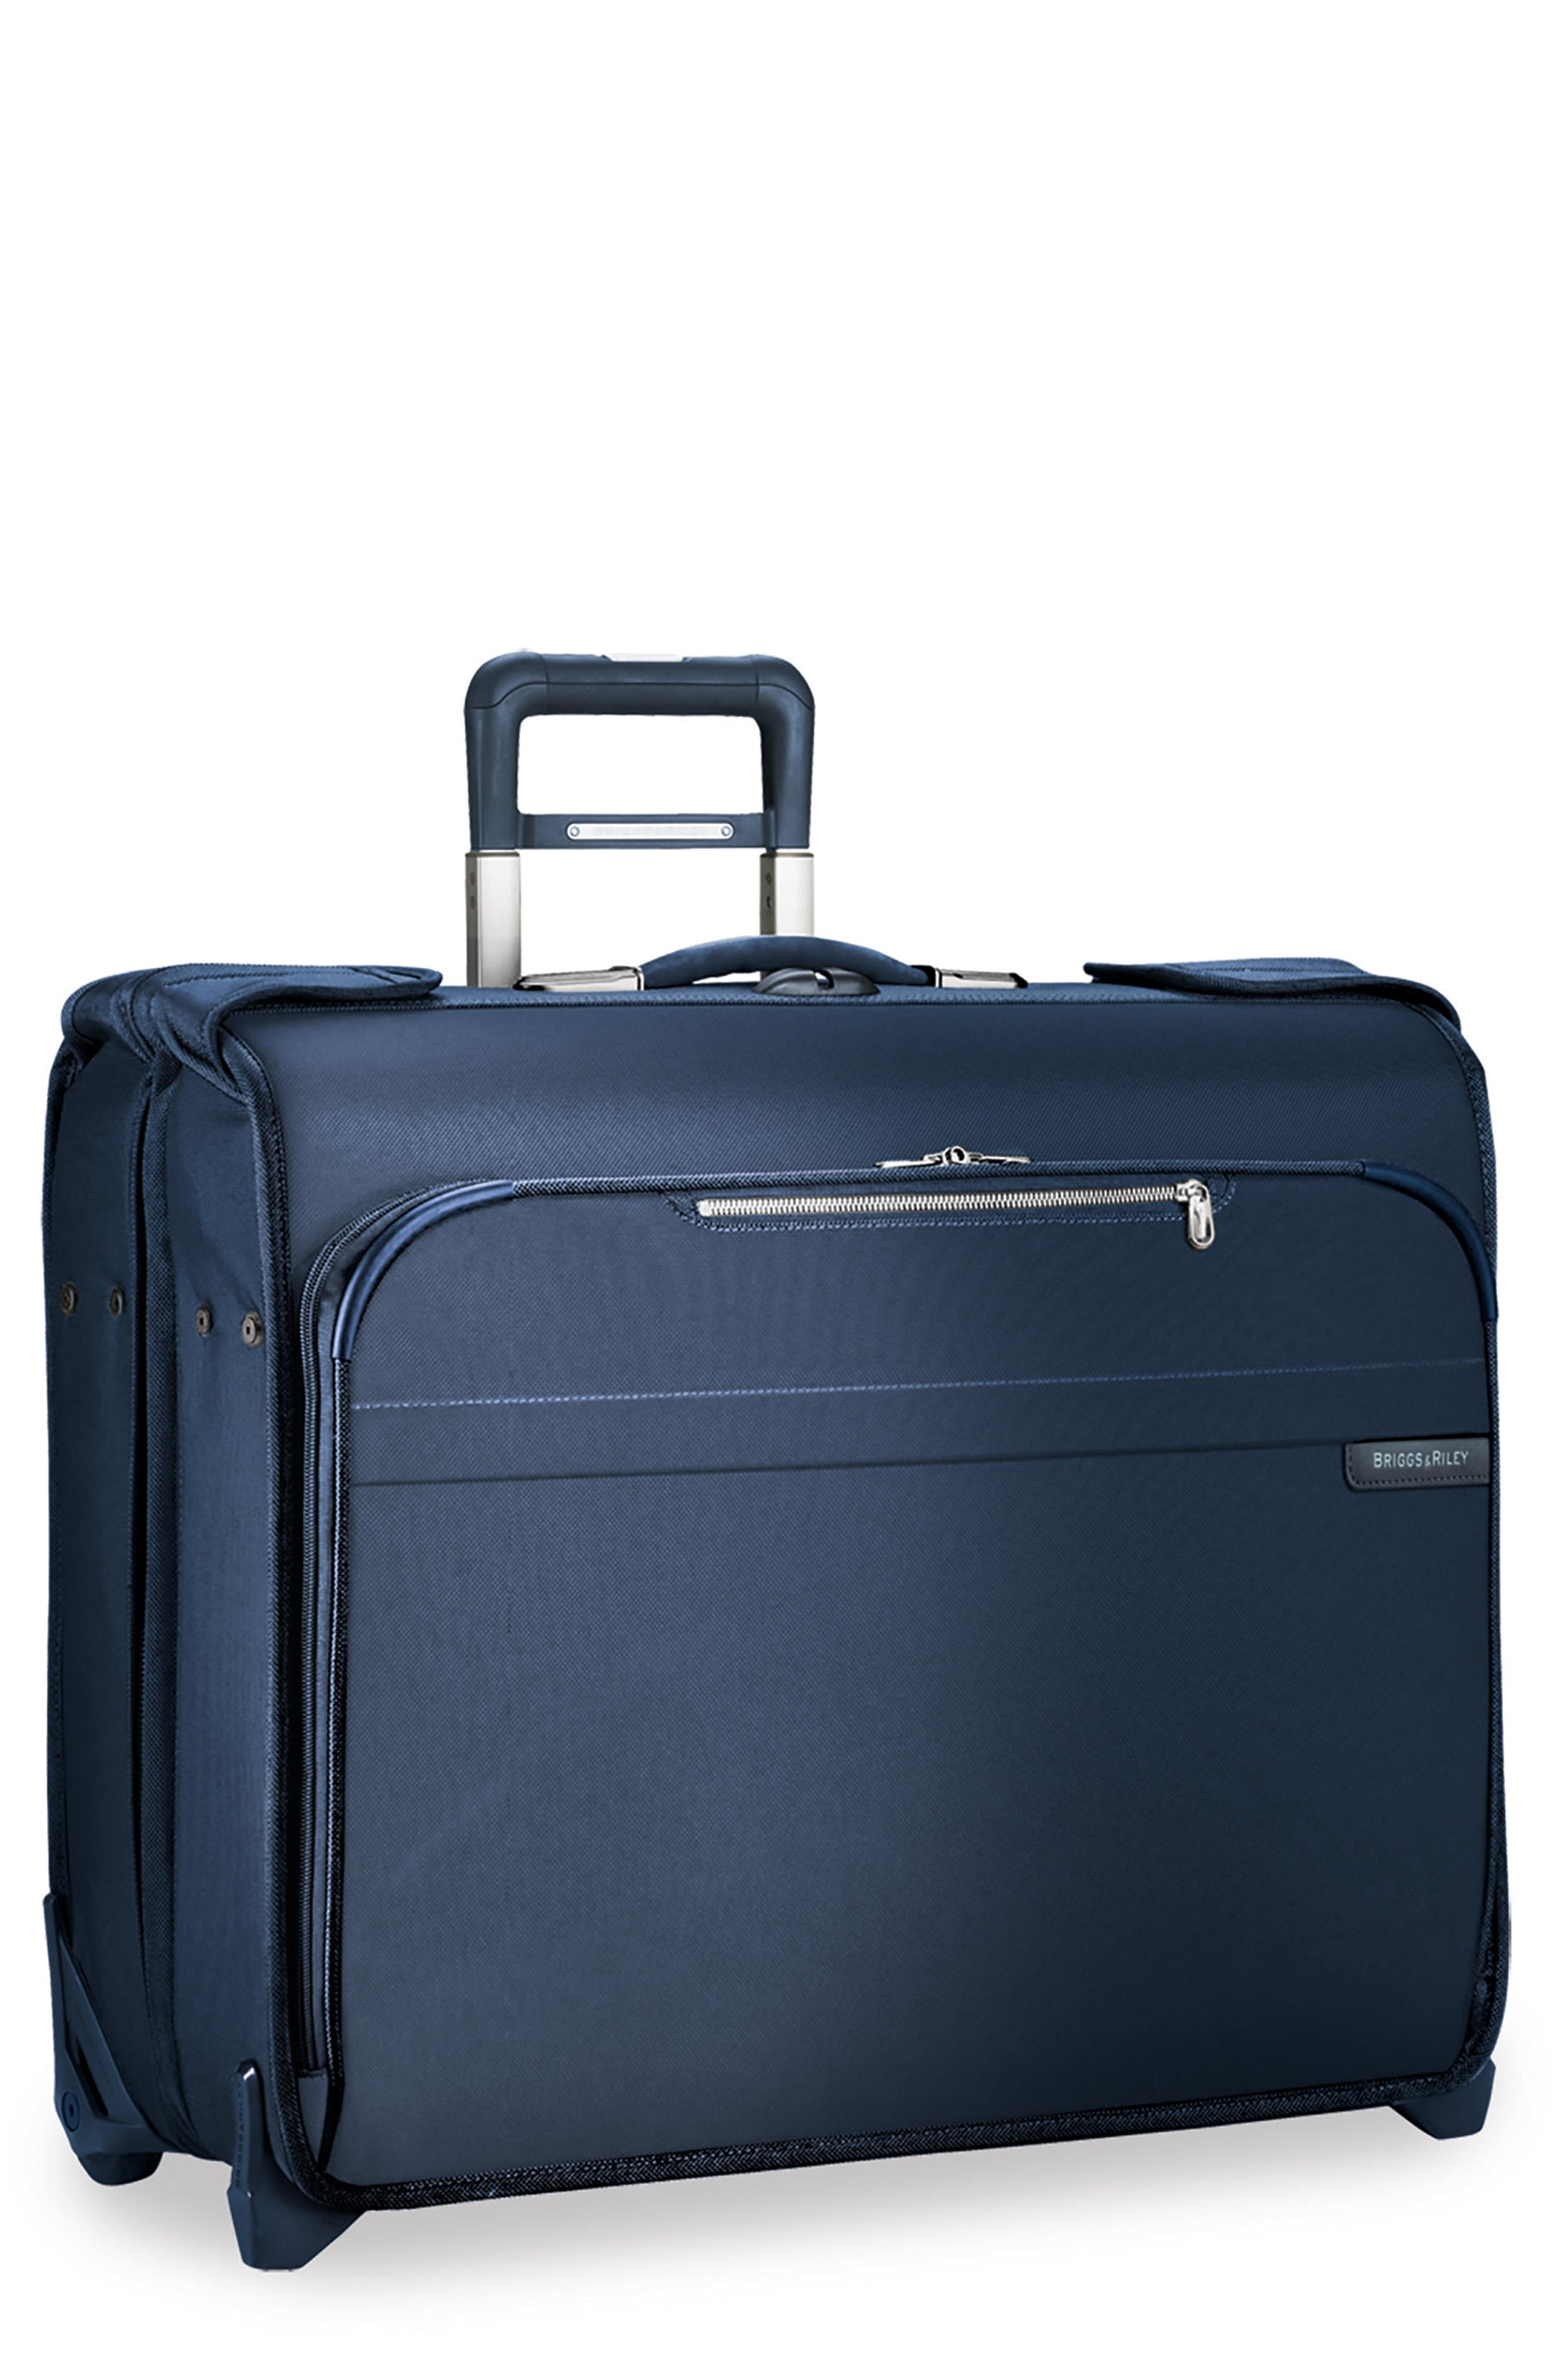 c876d24cde9d Lyst - Briggs   Riley Deluxe Wheeled Garment Bag - in Blue